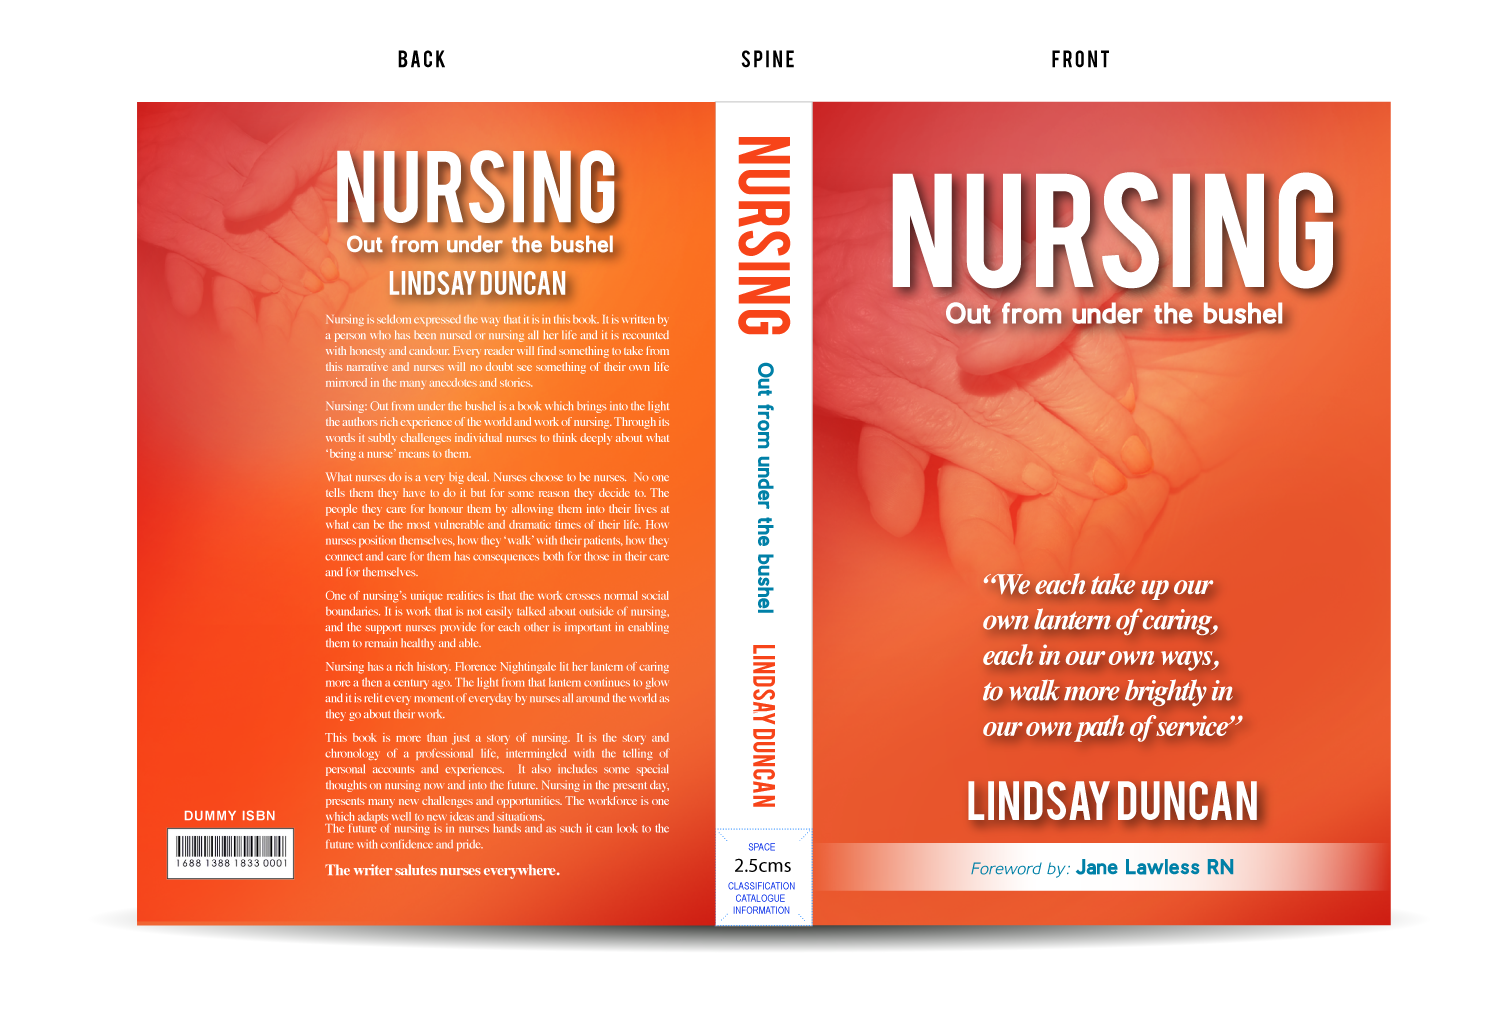 Book Cover Design New Zealand : Professional book cover designs healthcare